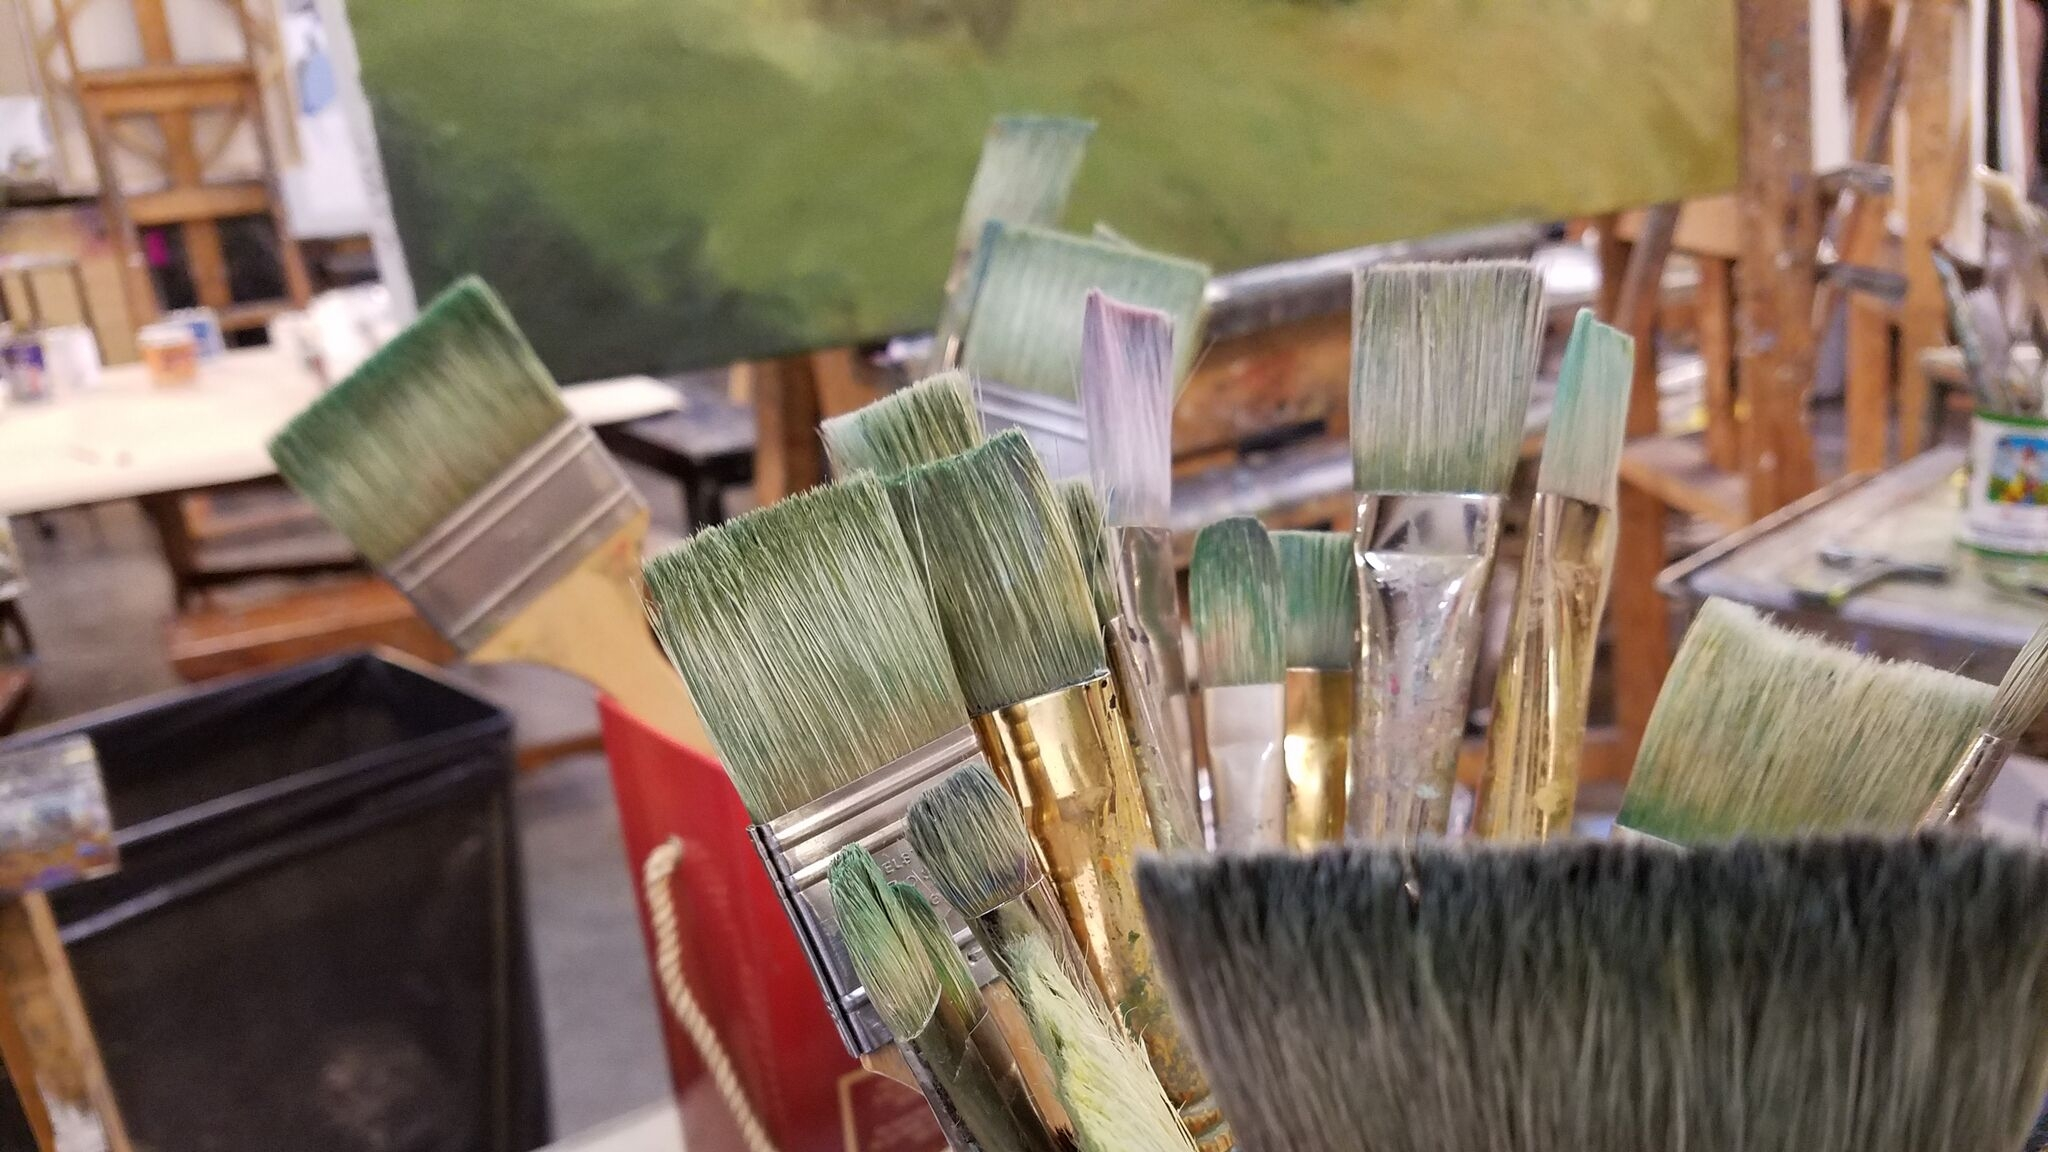 Braitman Studio teaches ongoing classes designed to help you master necessary skills in the visual arts and achieve your own personal success.  We emphasize individual attention in a positively oriented environment.